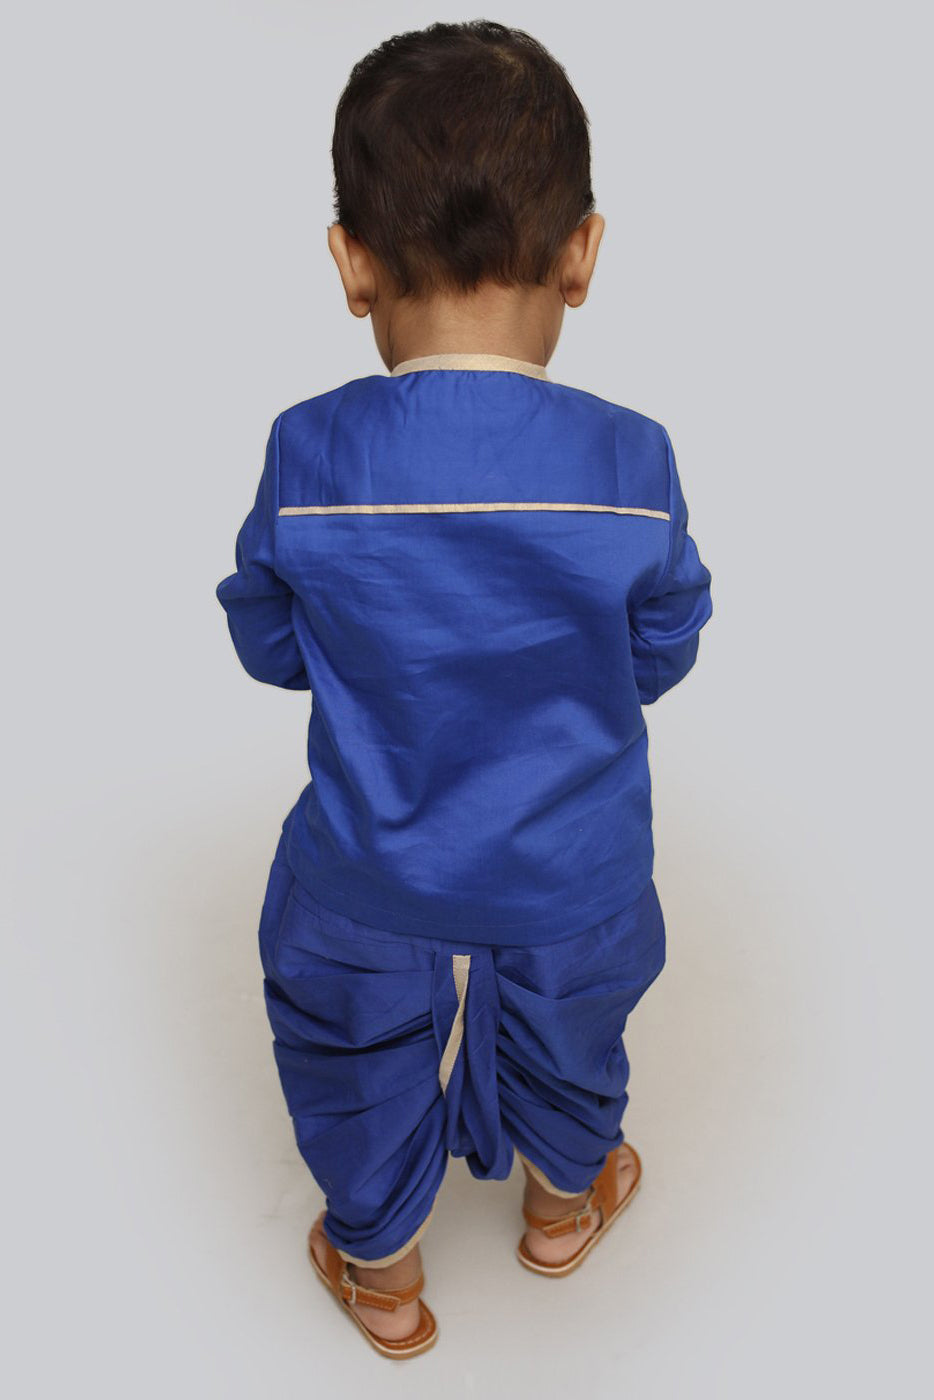 Baby Boy Blue Jaal Dhoti Set